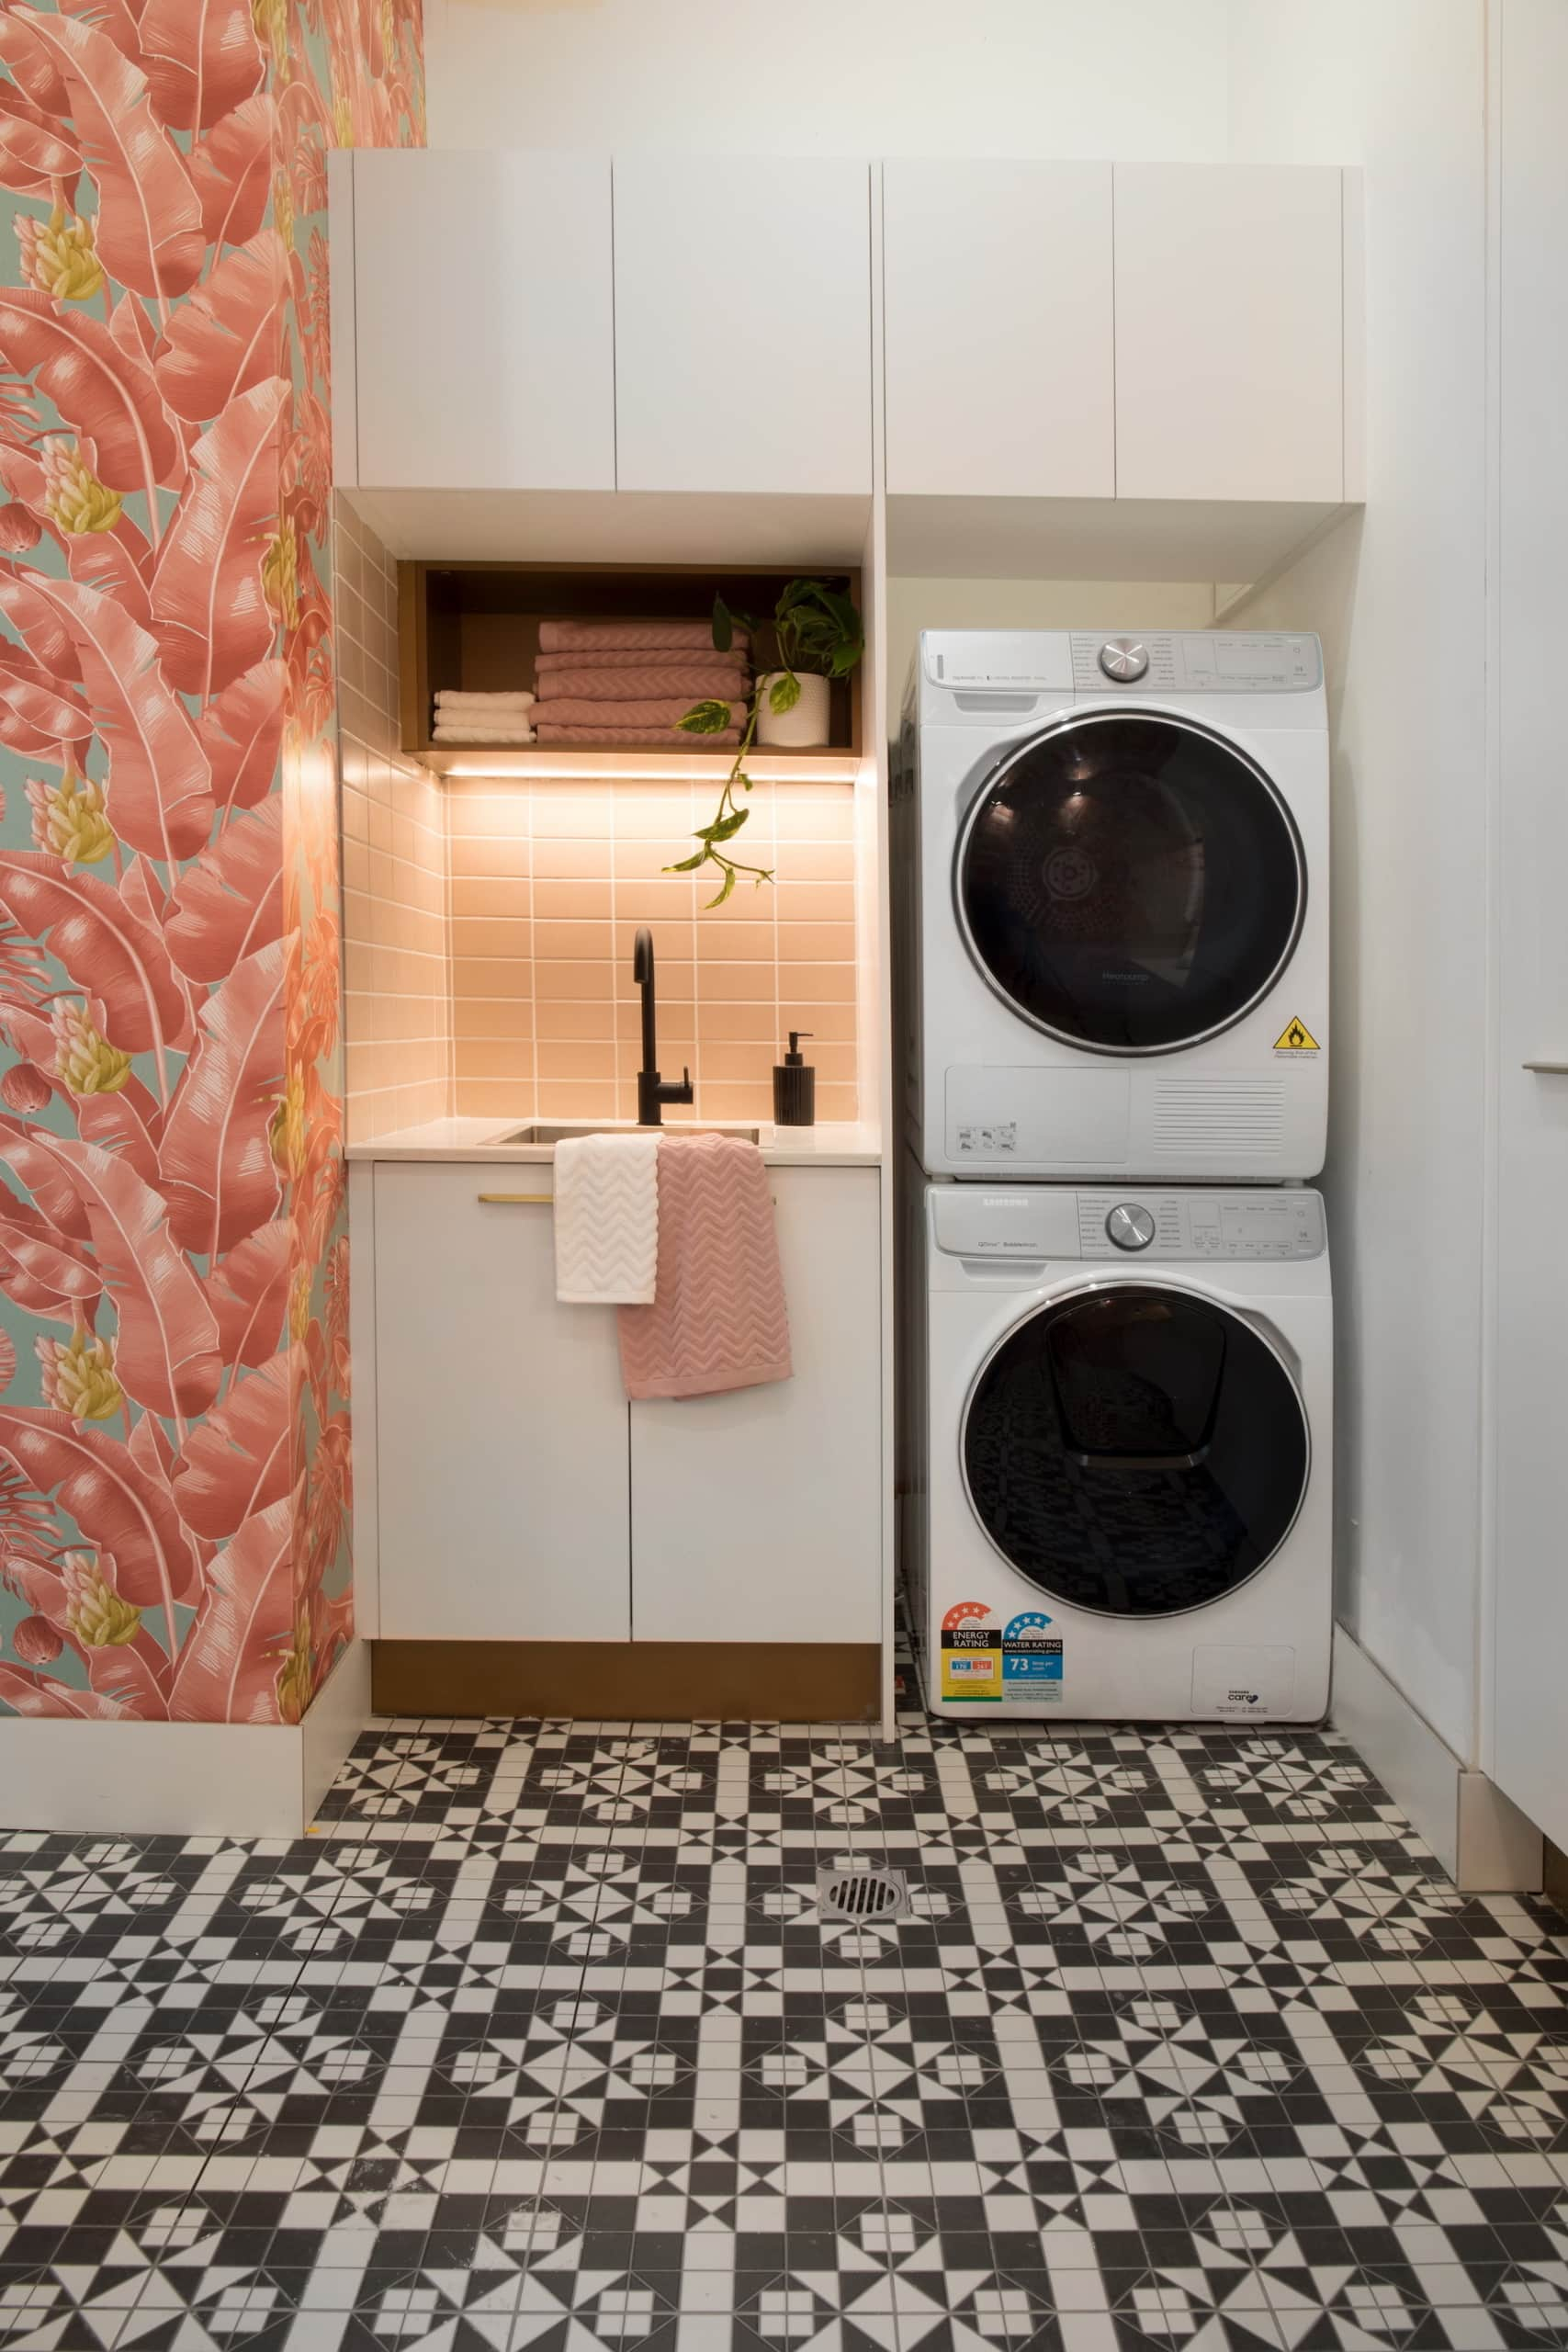 house rules 2020 penthouse reveal laundry with pink wallpaper and black and white floor tiles